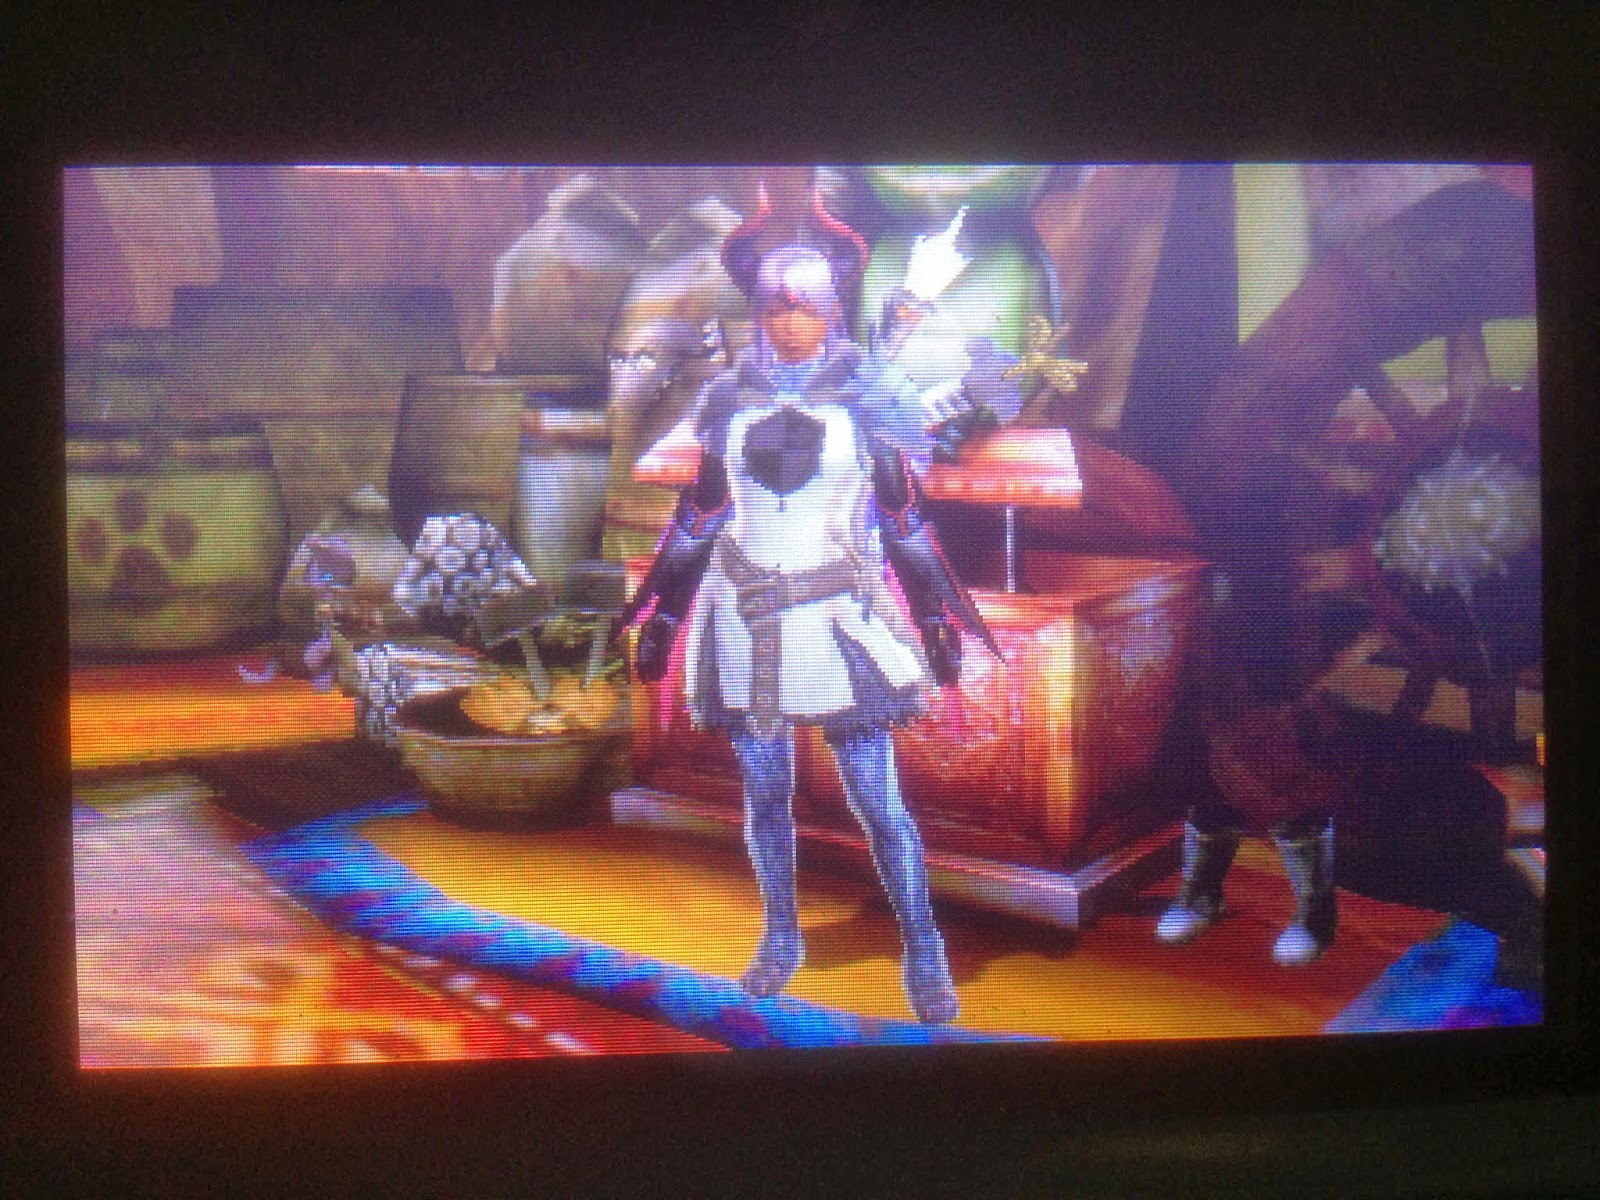 tdn shumi blog monster hunter 4 more good rare 7s and armor sets the last new armor set is this it is just a typical gunlance skill set but by limiting the skills to just what is needed guard ability 2